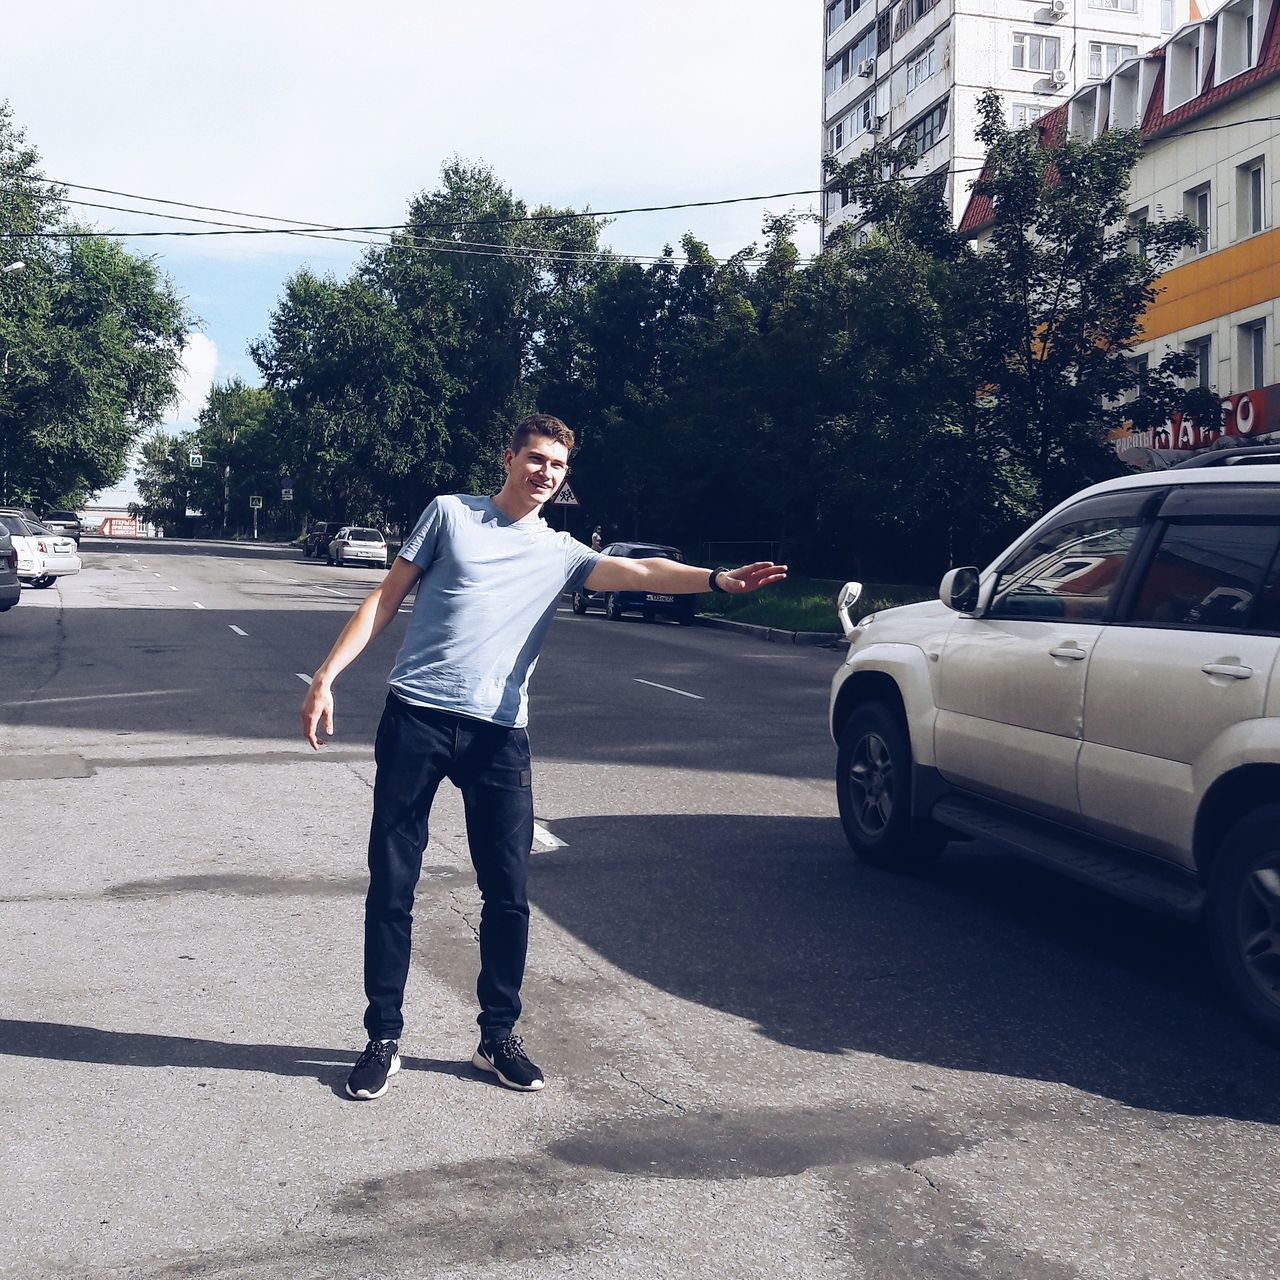 car, one person, tree, full length, transportation, real people, road, outdoors, day, men, young adult, people